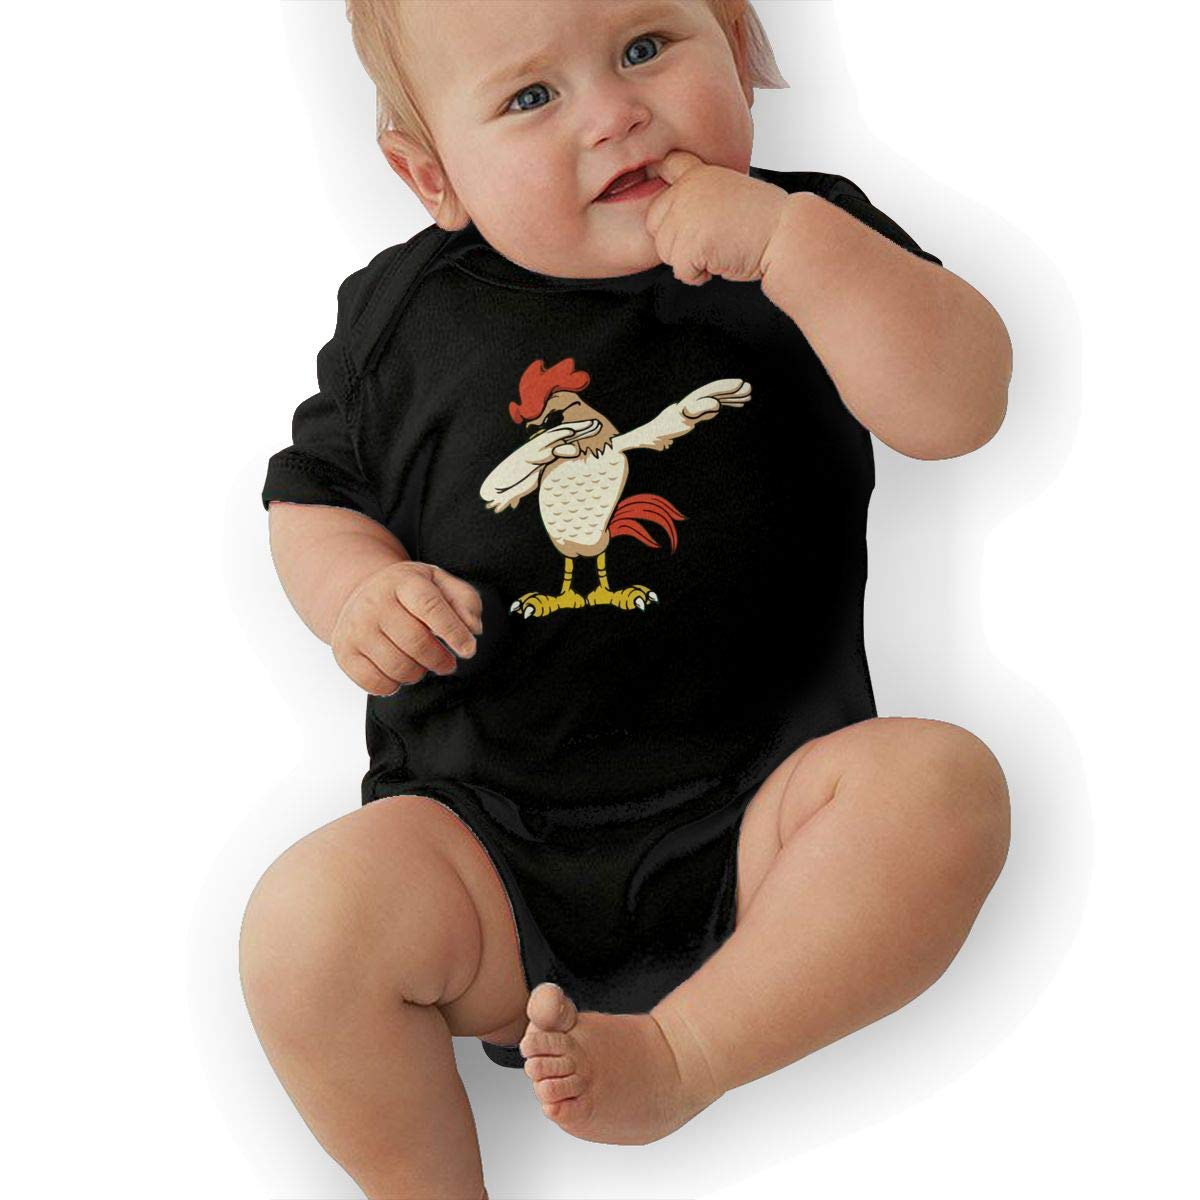 U88oi-8 Short Sleeve Cotton Bodysuit for Baby Girls Boys Cute Chicken Dabbing Crawler